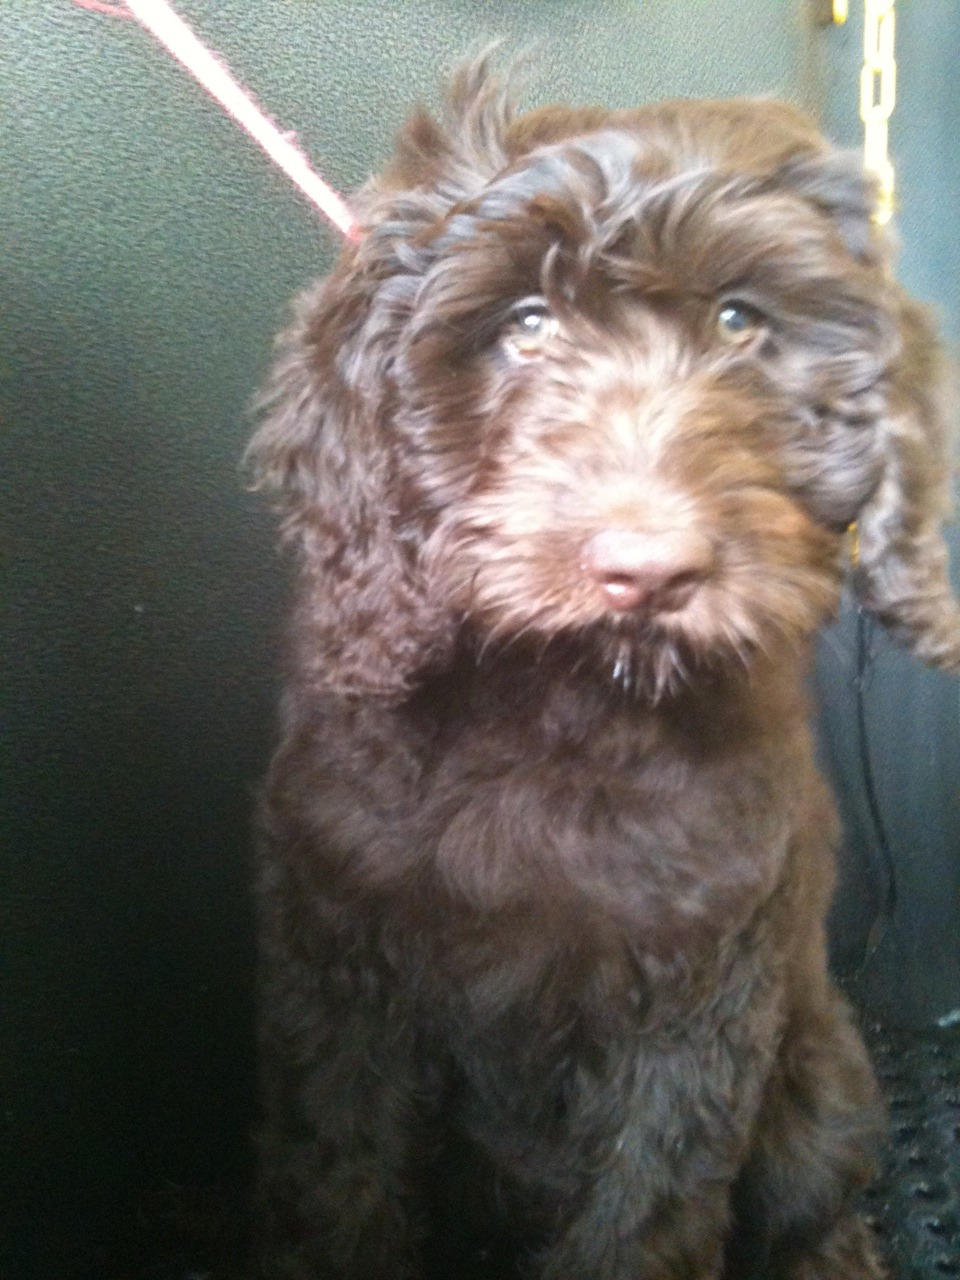 I got to meet Charlotte today! She's a 15 wk old chocolate Goldendoodle